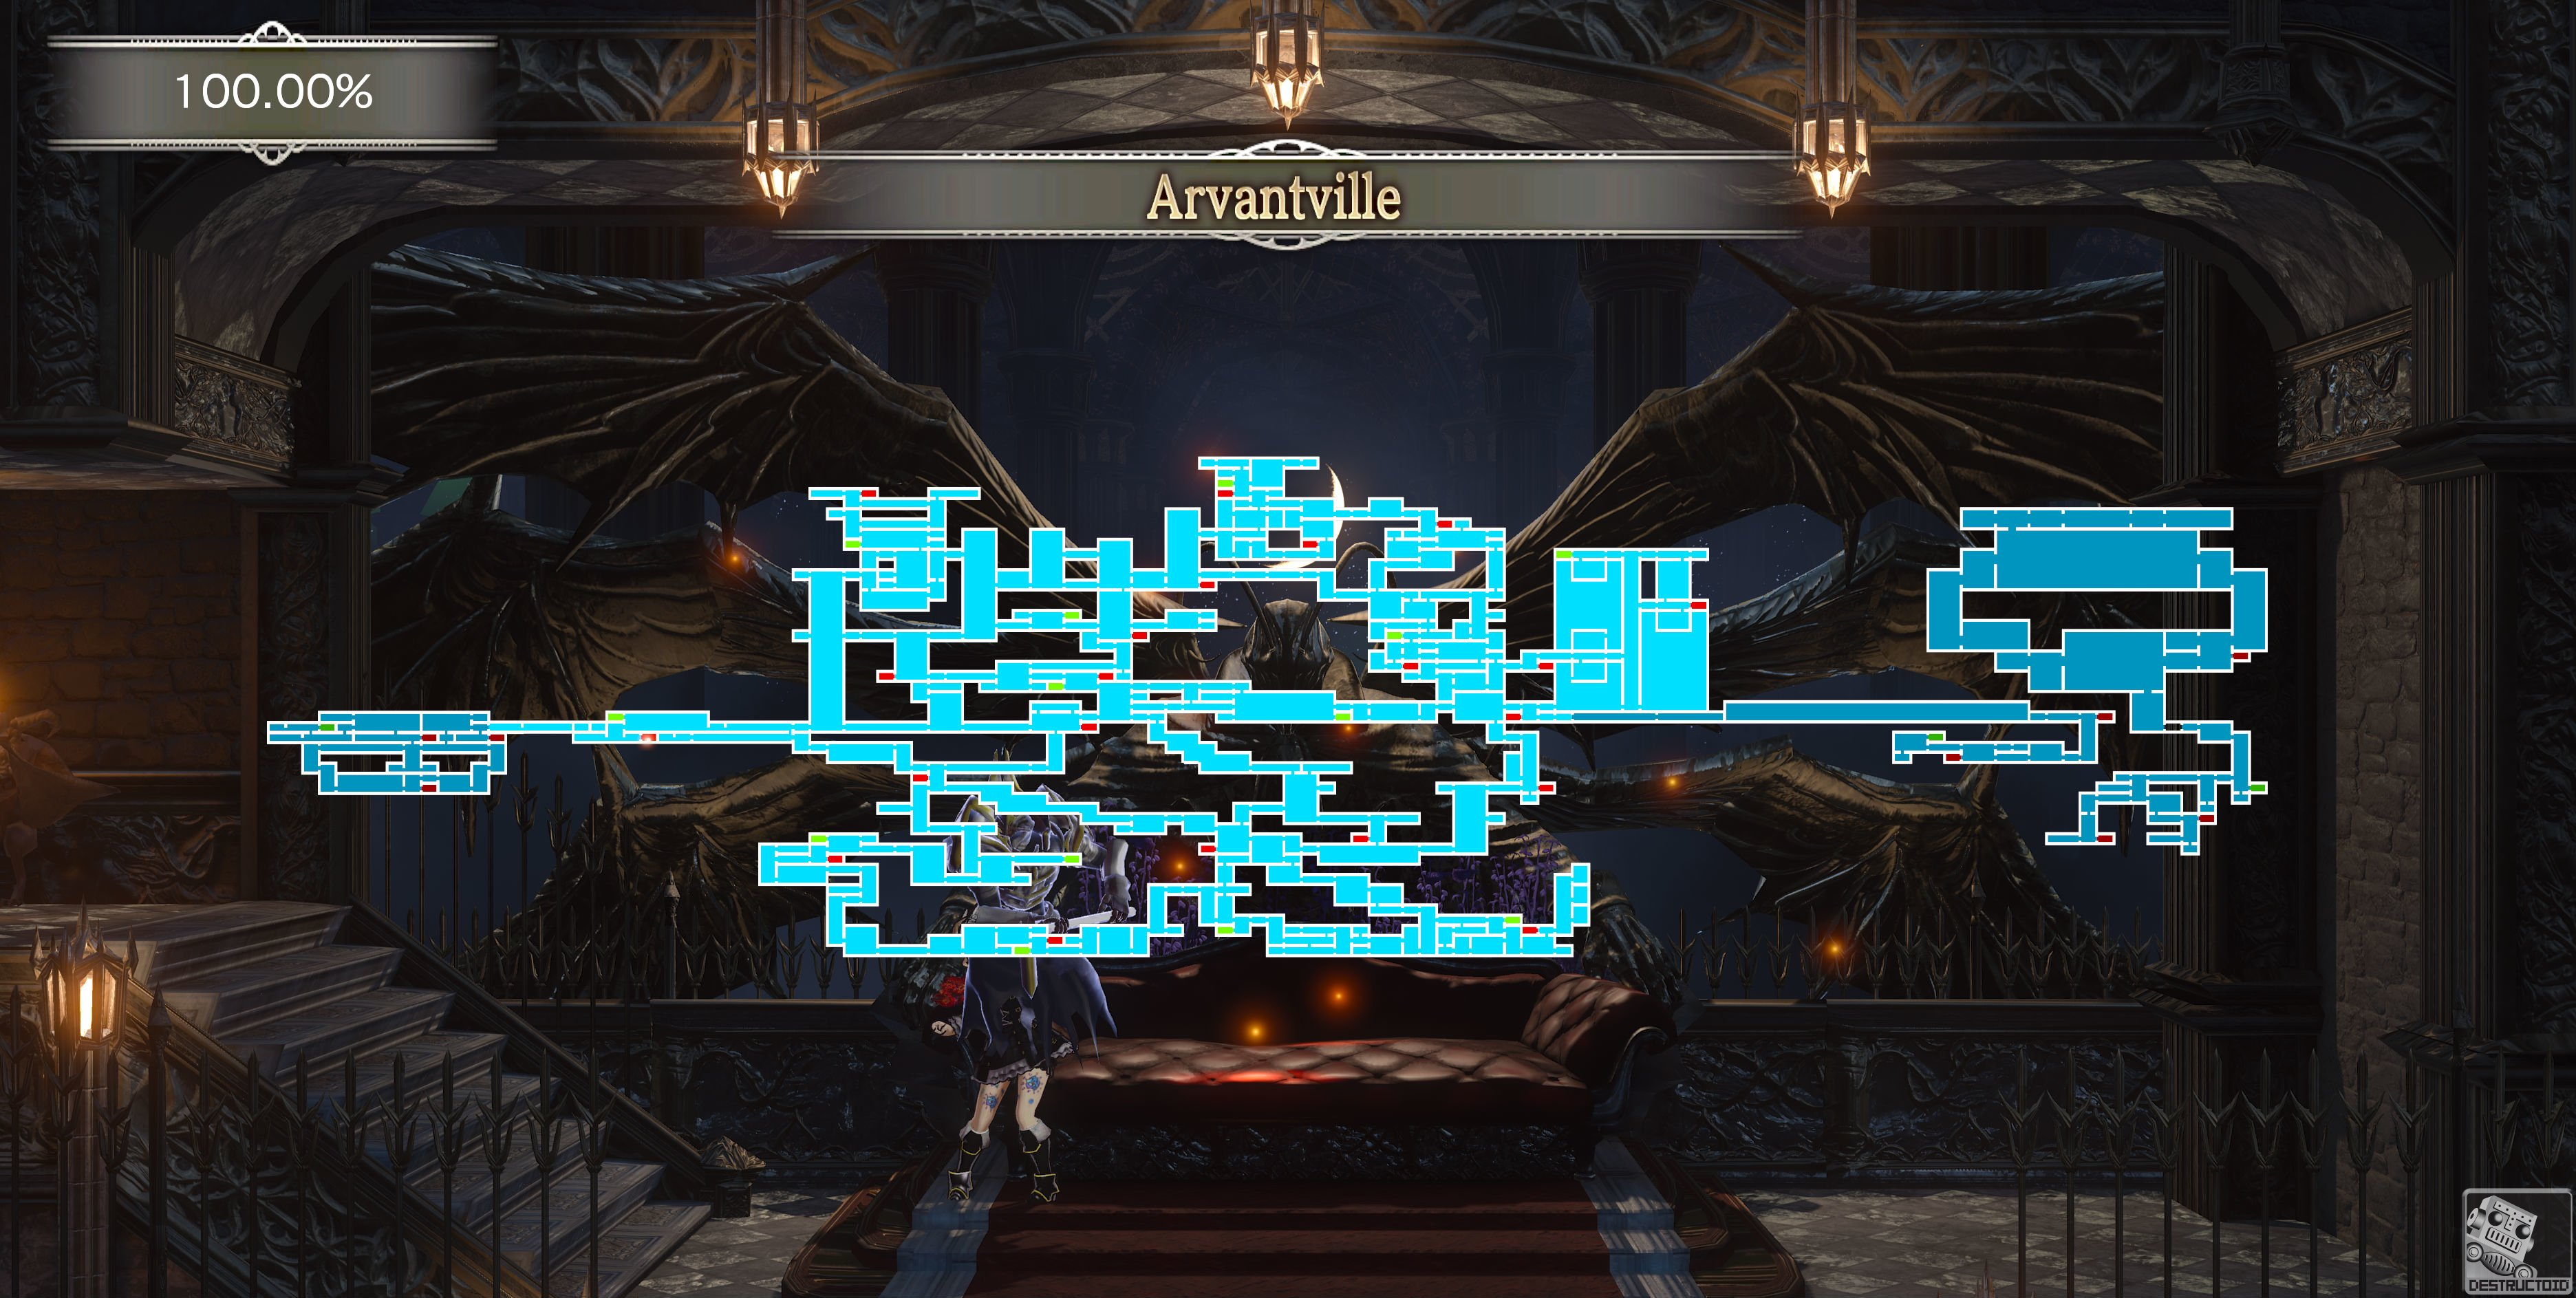 Bloodstained guide: Here's a 100% full map with zoomed-in